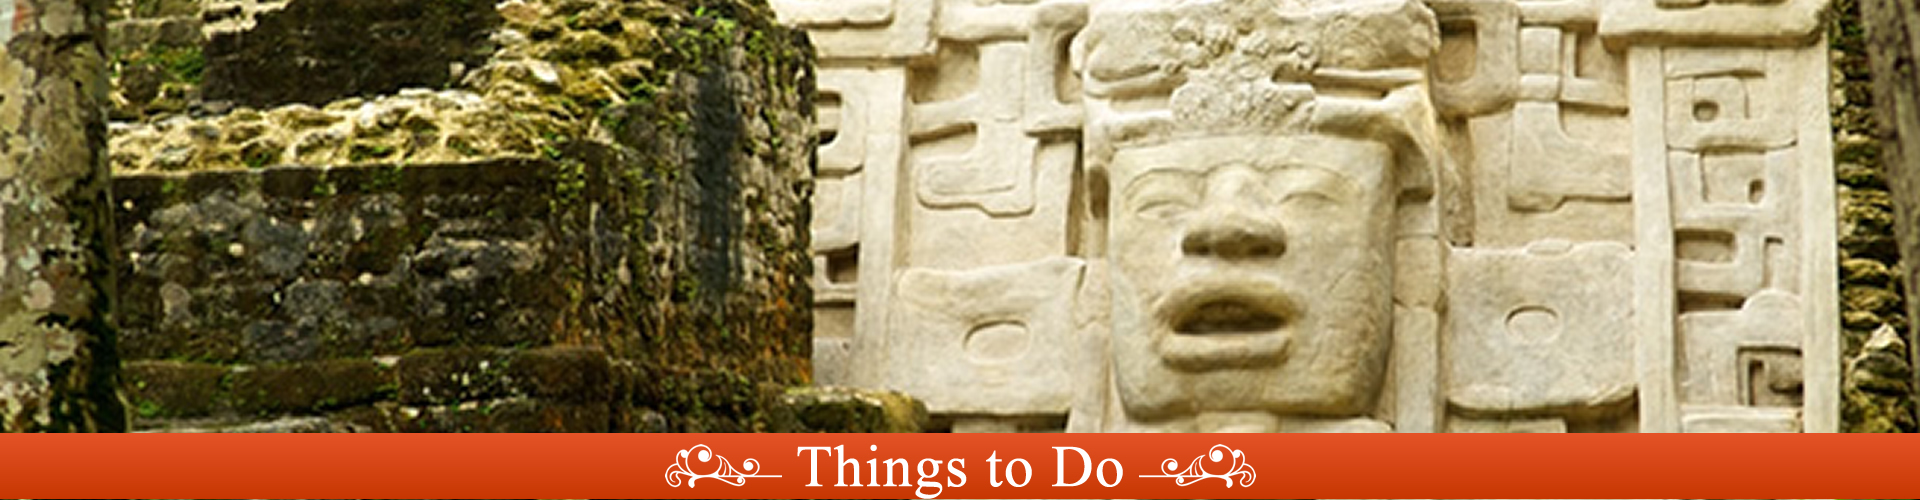 D-victoria-orange-walk-Belize-things-to-do